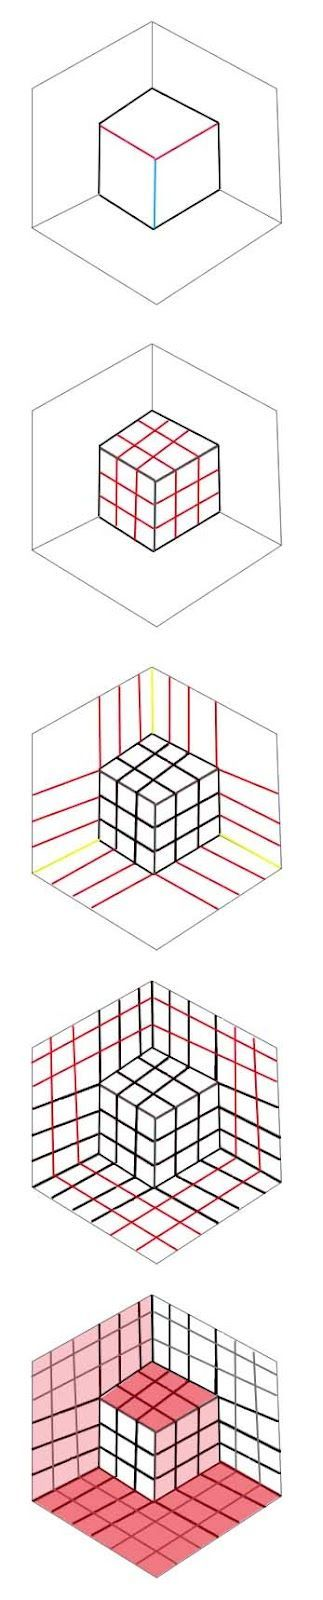 artisan des arts: Optical illusion cube - tutorial